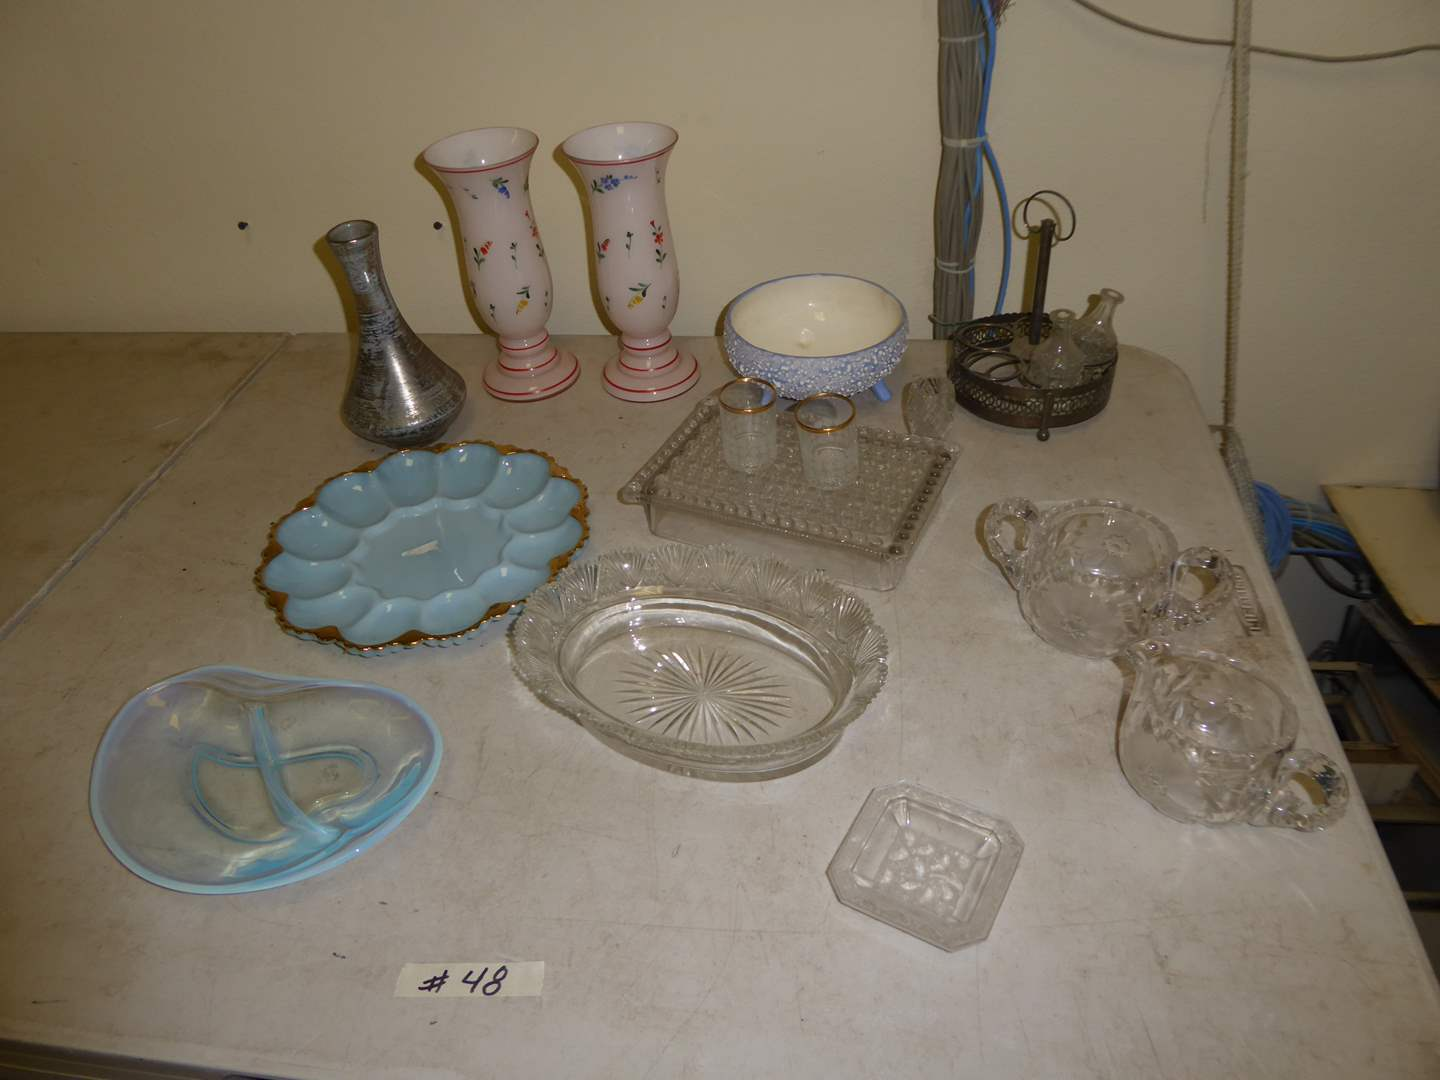 Lot # 48 - Hand Painted Stangle Vase, Delphite Blue Milk Glass Plate, Opalescent Glass Bowl & More  (main image)